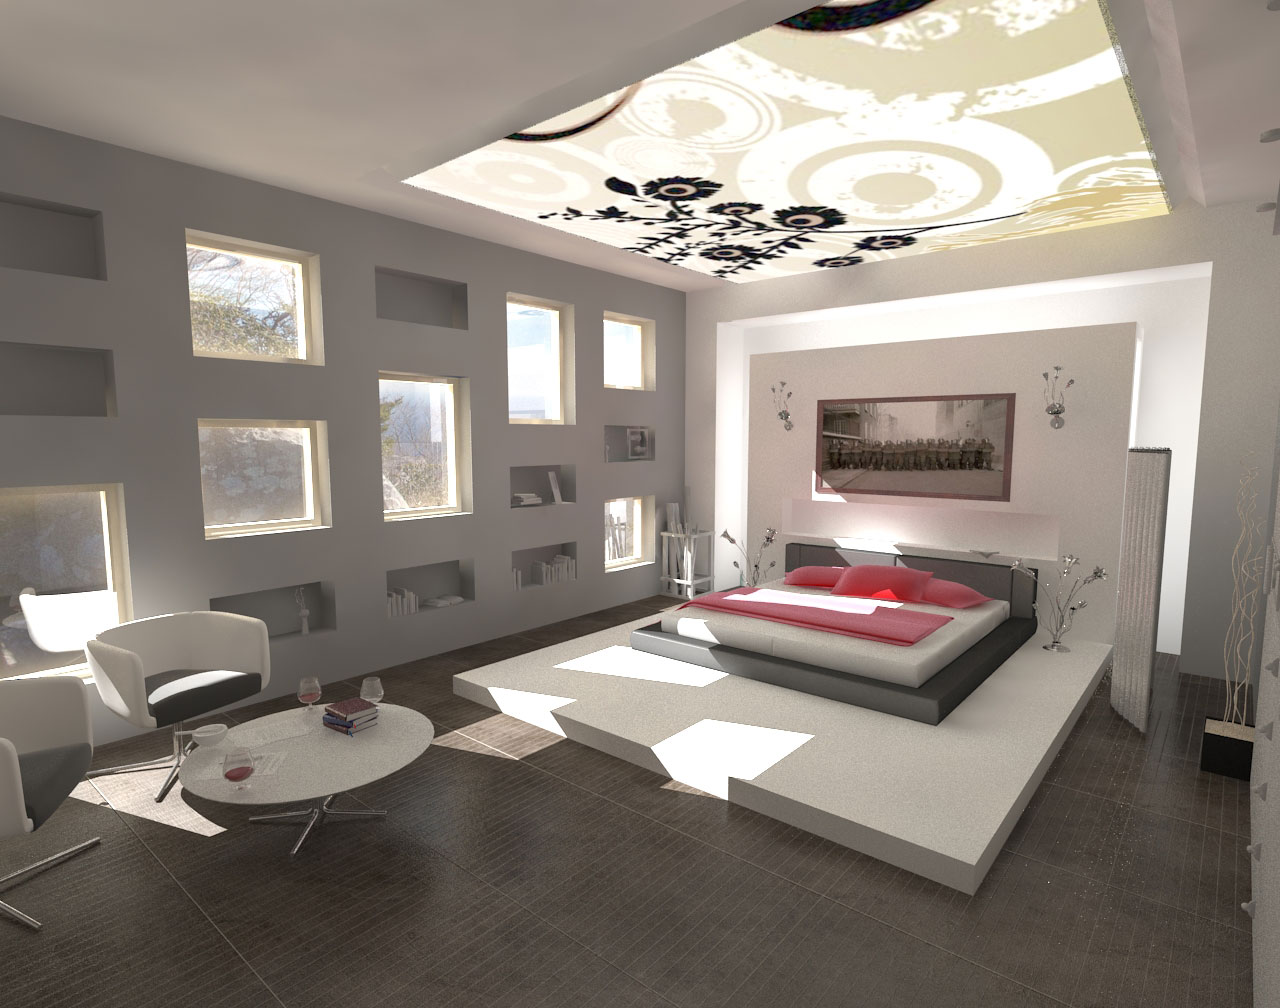 decorations minimalist design modern bedroom interior On modern minimalist house interior design